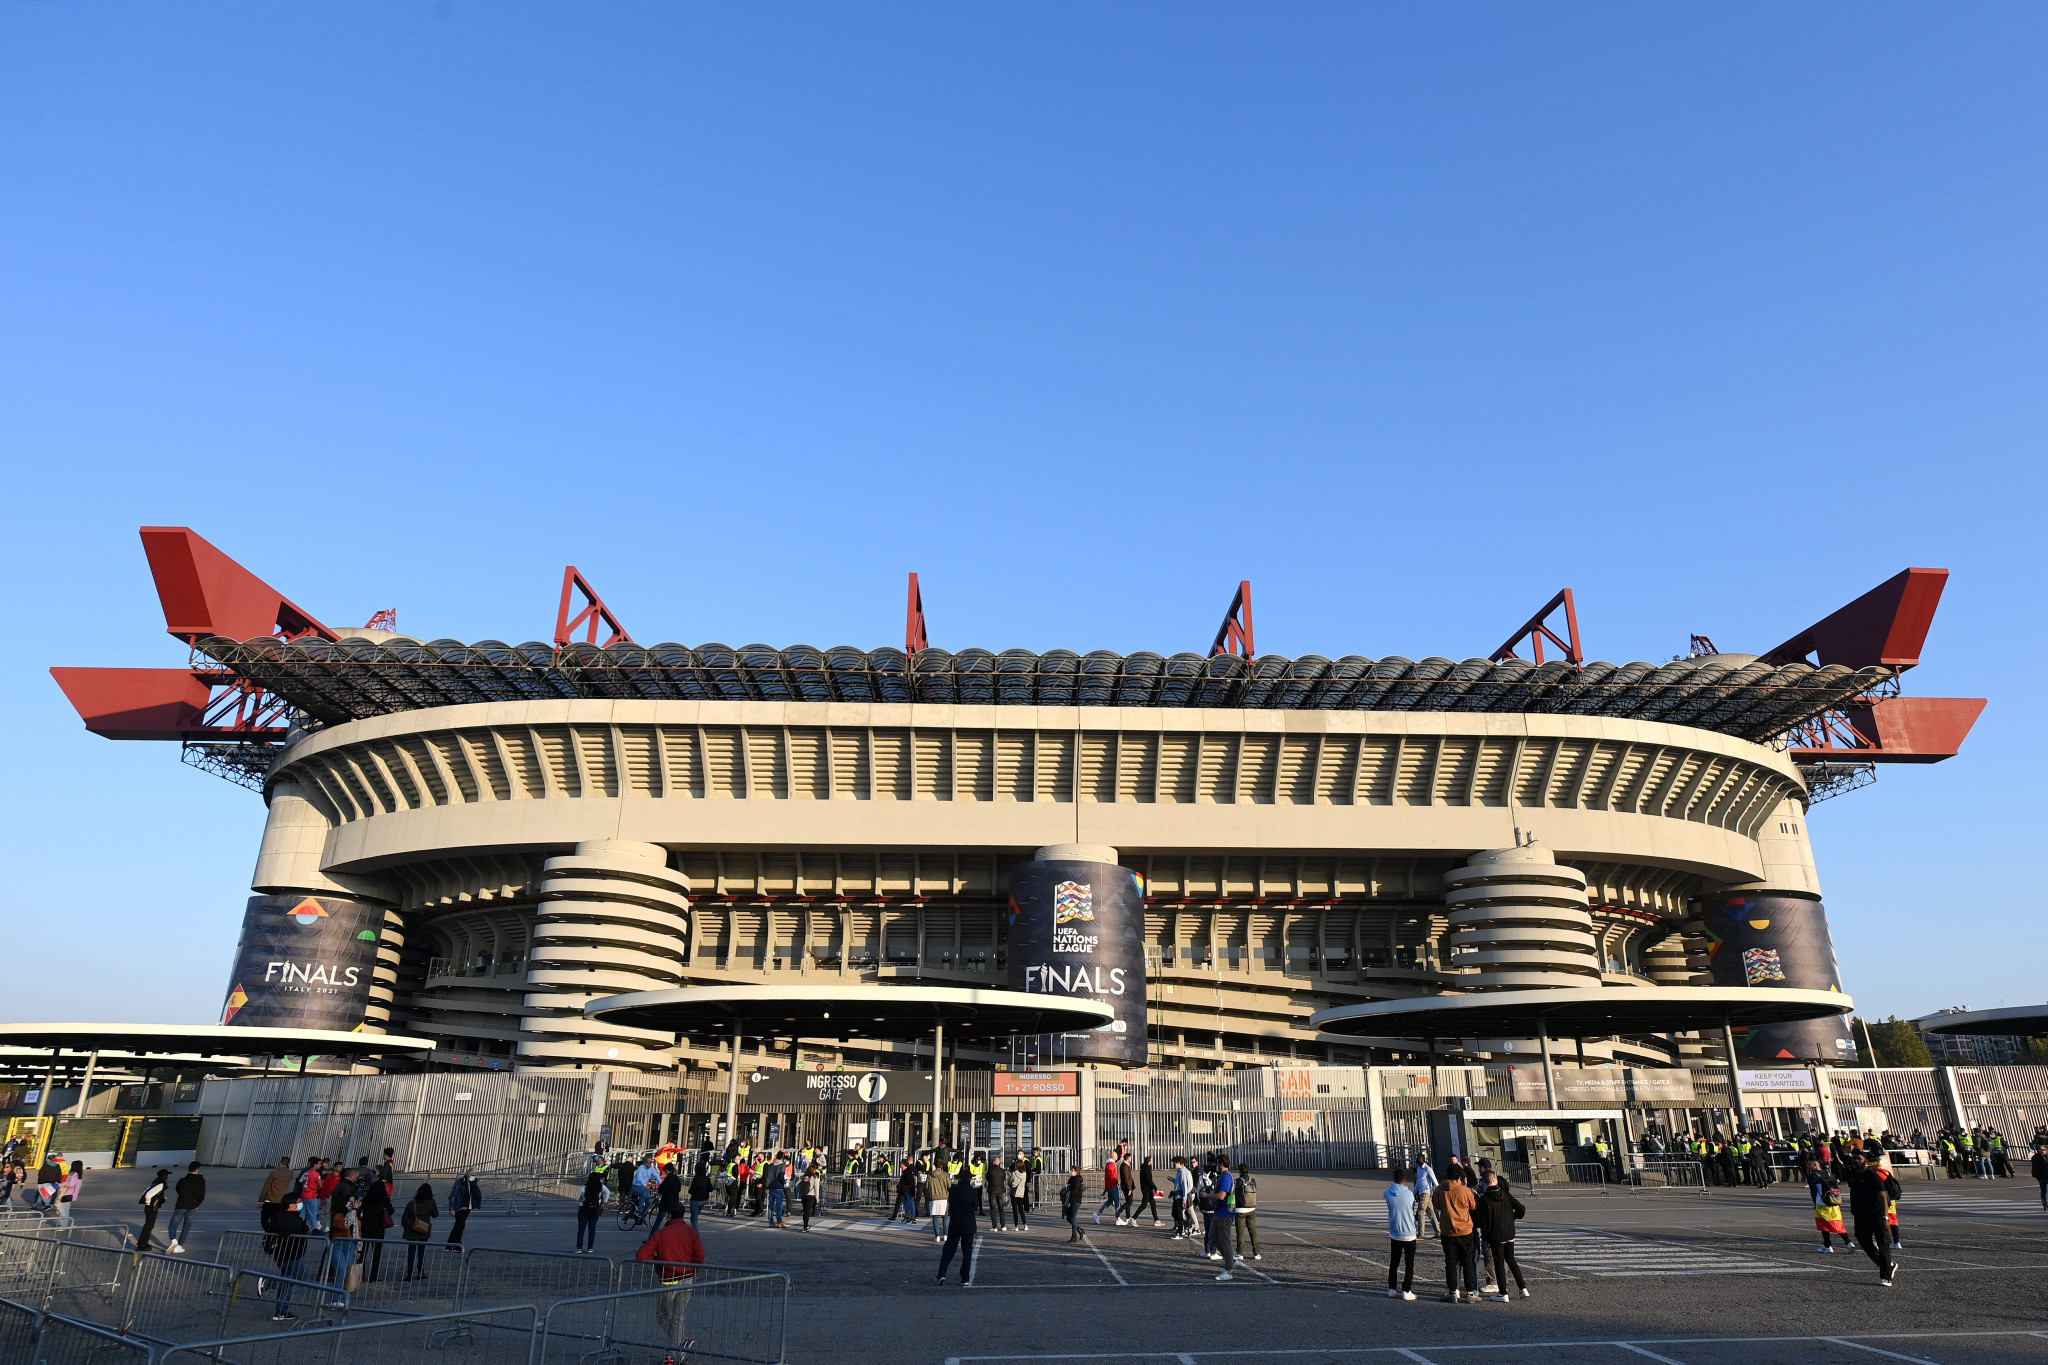 AC Milan and Inter Milan are looking to gain about €120 million from the new San Siro ©Getty Images